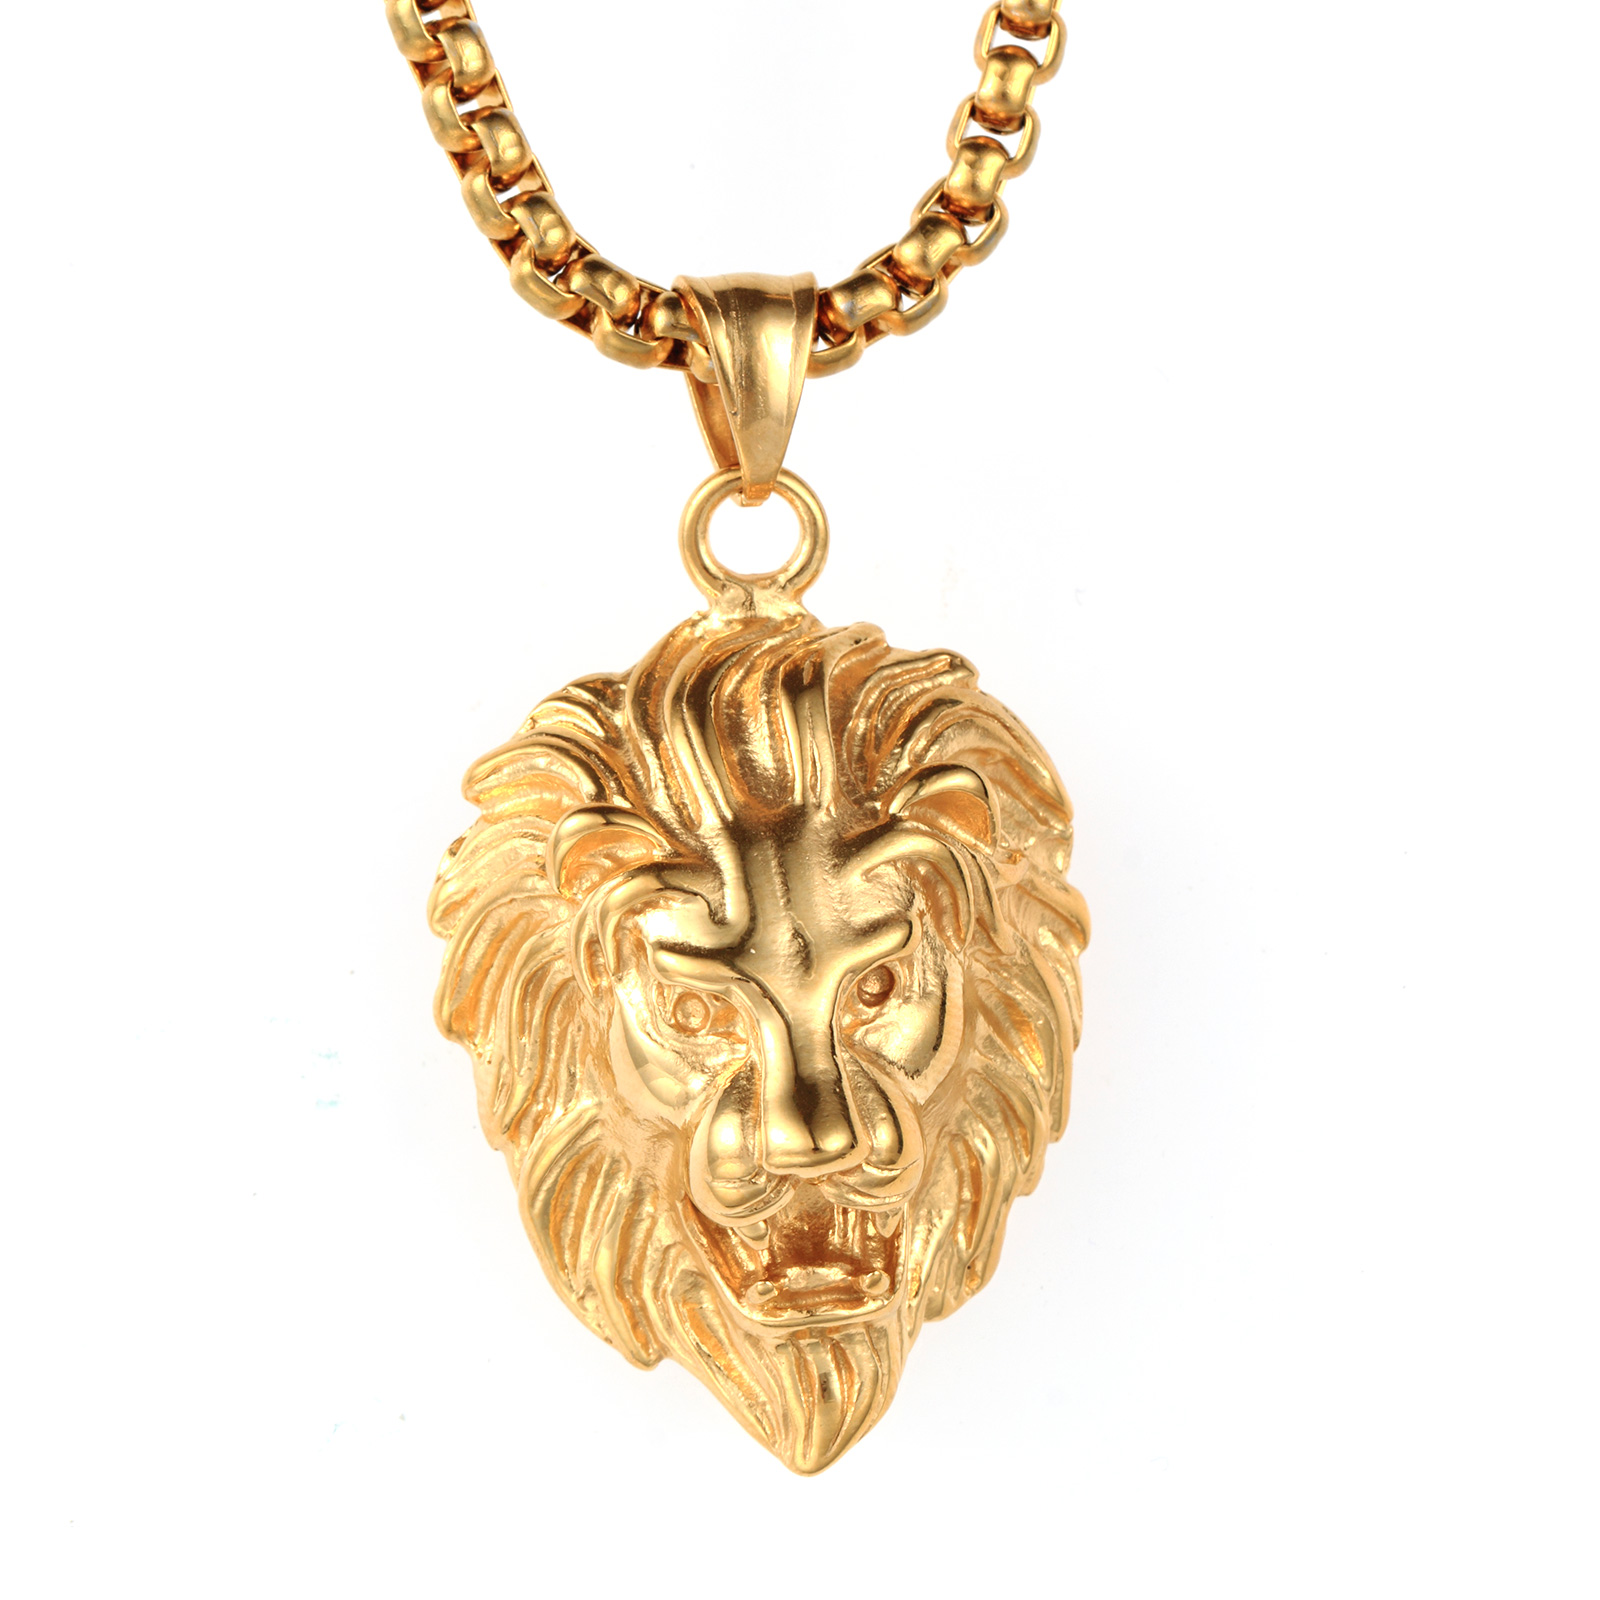 suspension item female jewelery steampunk getsubject retro bronze pendant alloy male punk necklace lion aeproduct anime choker and vintage